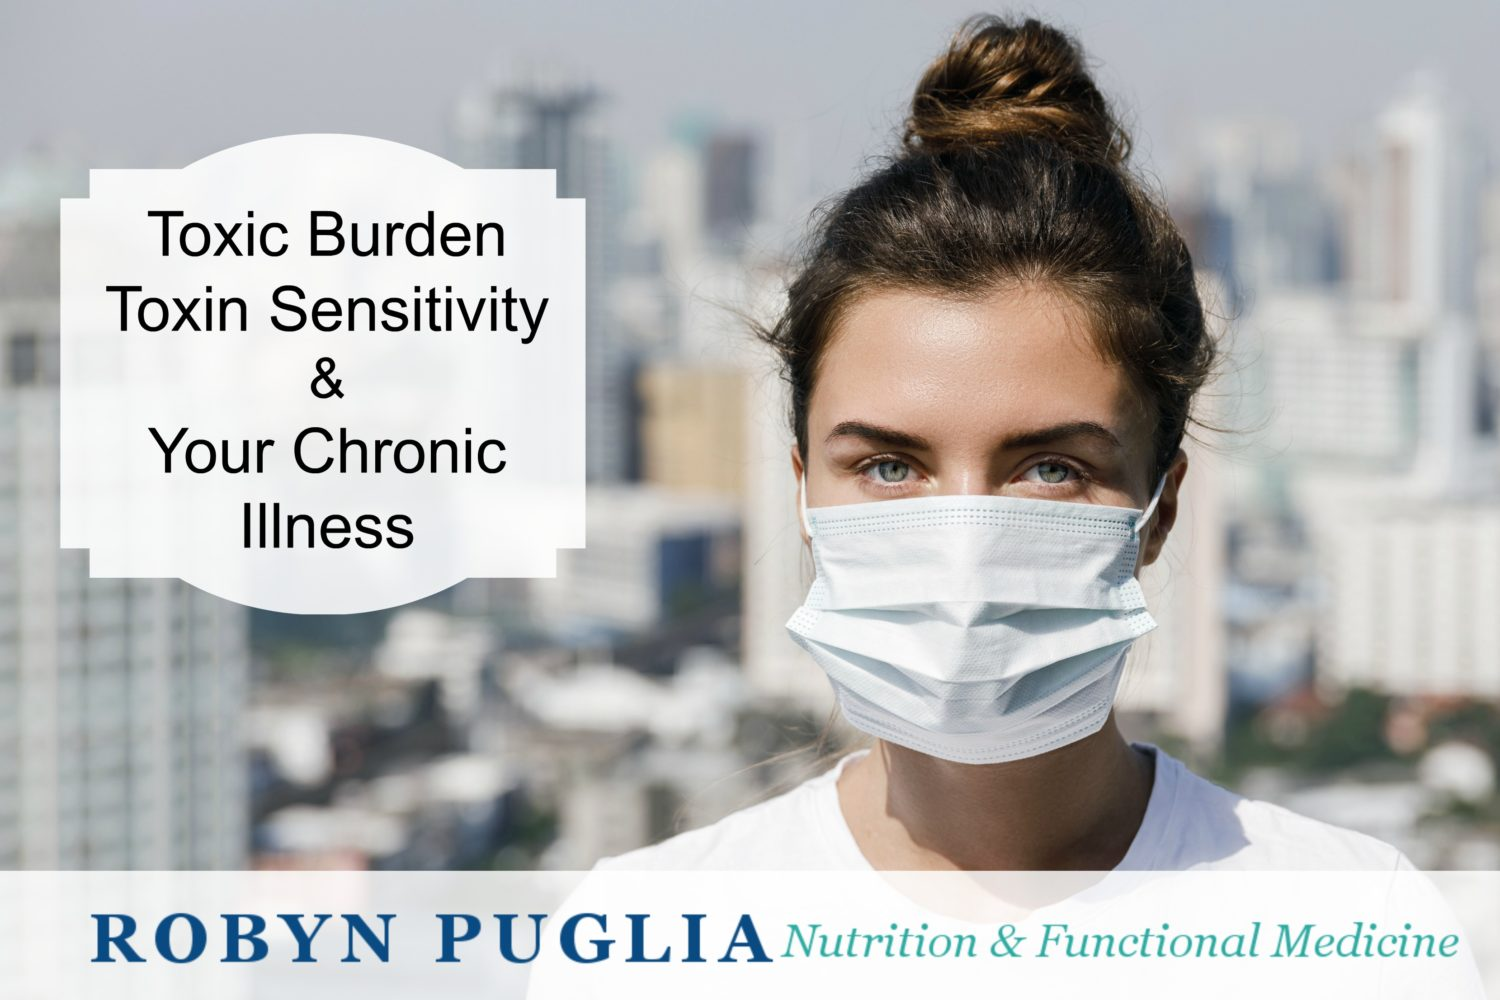 Toxic Burden, Toxin Sensitivity and Chronic Illness